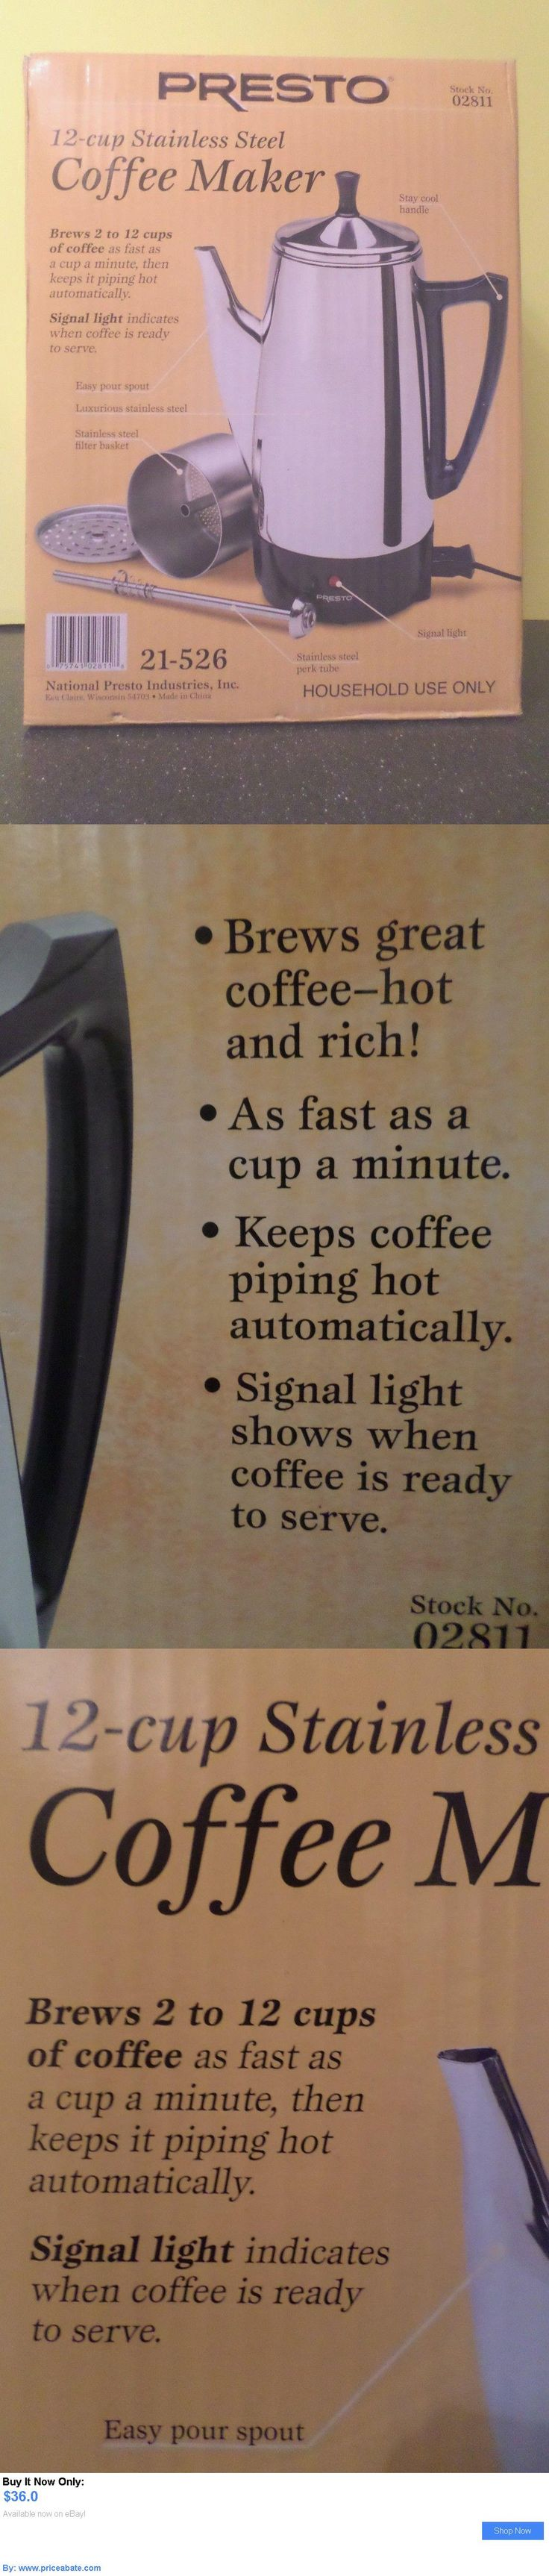 Small Kitchen Appliances: Presto 12 Cup Stainless Steel Traditional Coffee Maker Percolator Electric Nib BUY IT NOW ONLY: $36.0 #priceabateSmallKitchenAppliances OR #priceabate